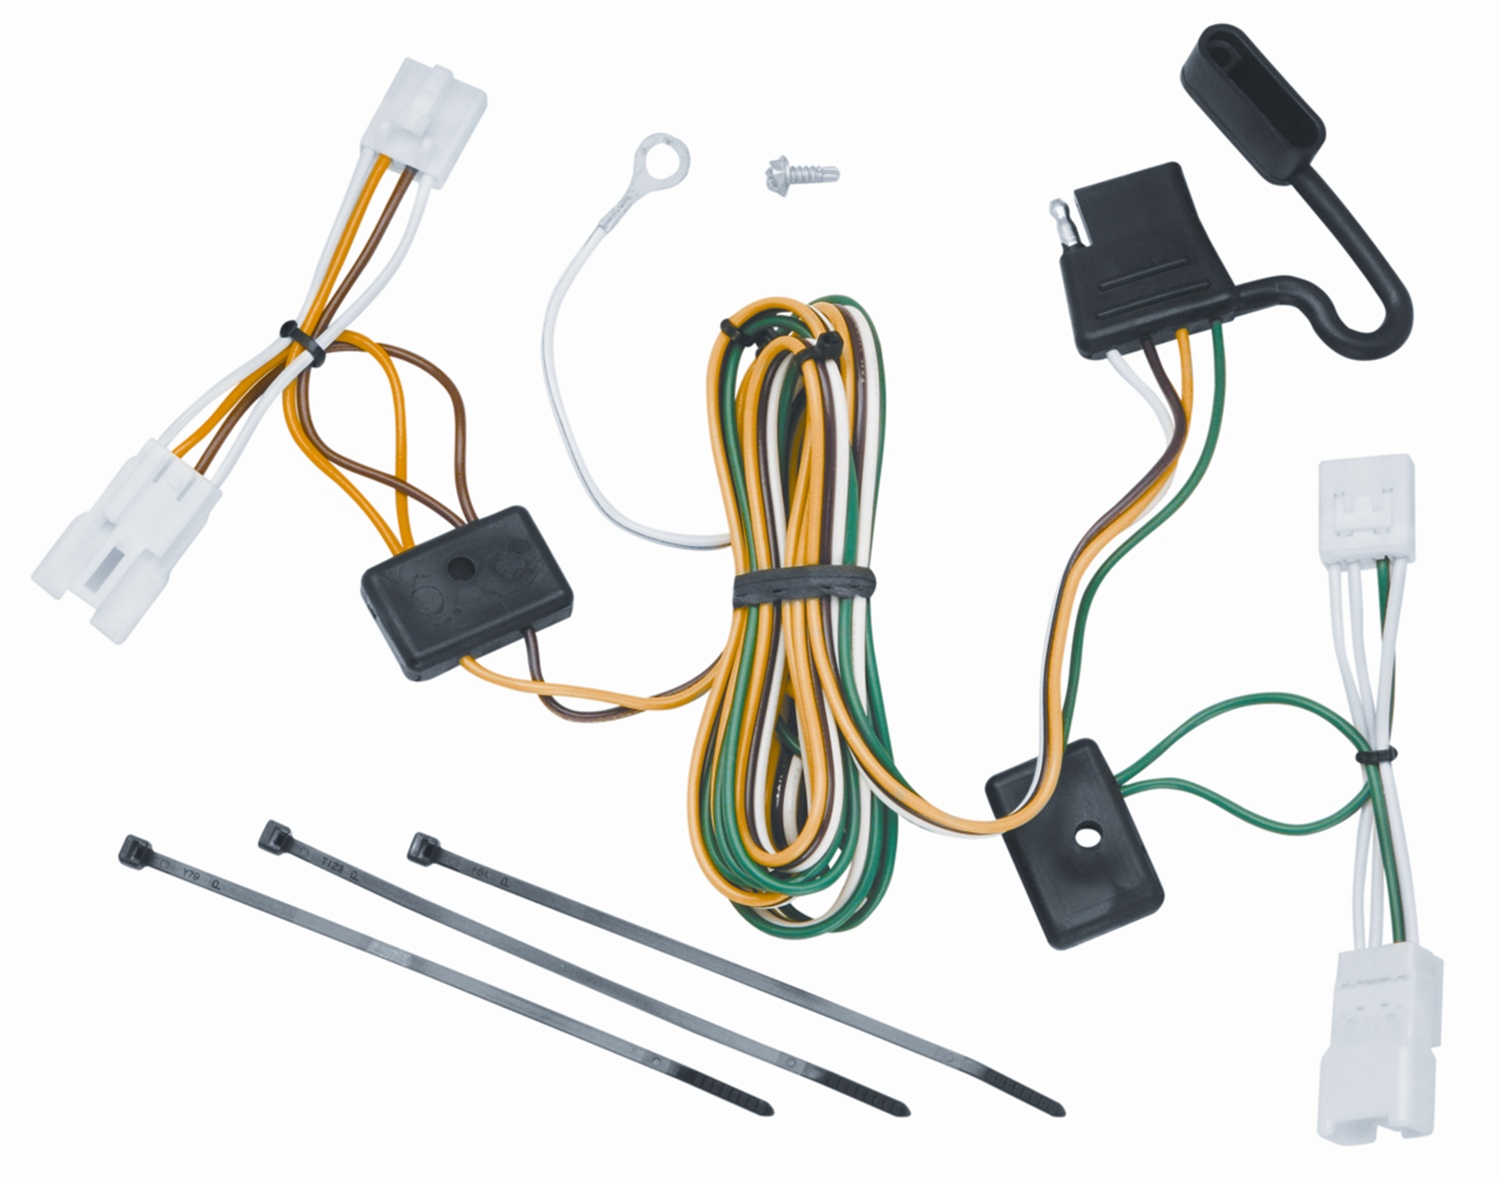 Kia Trailer Wiring Harness Electrical Diagrams 2011 Sorento Location Vehicle To Connector 118452 For 07 08